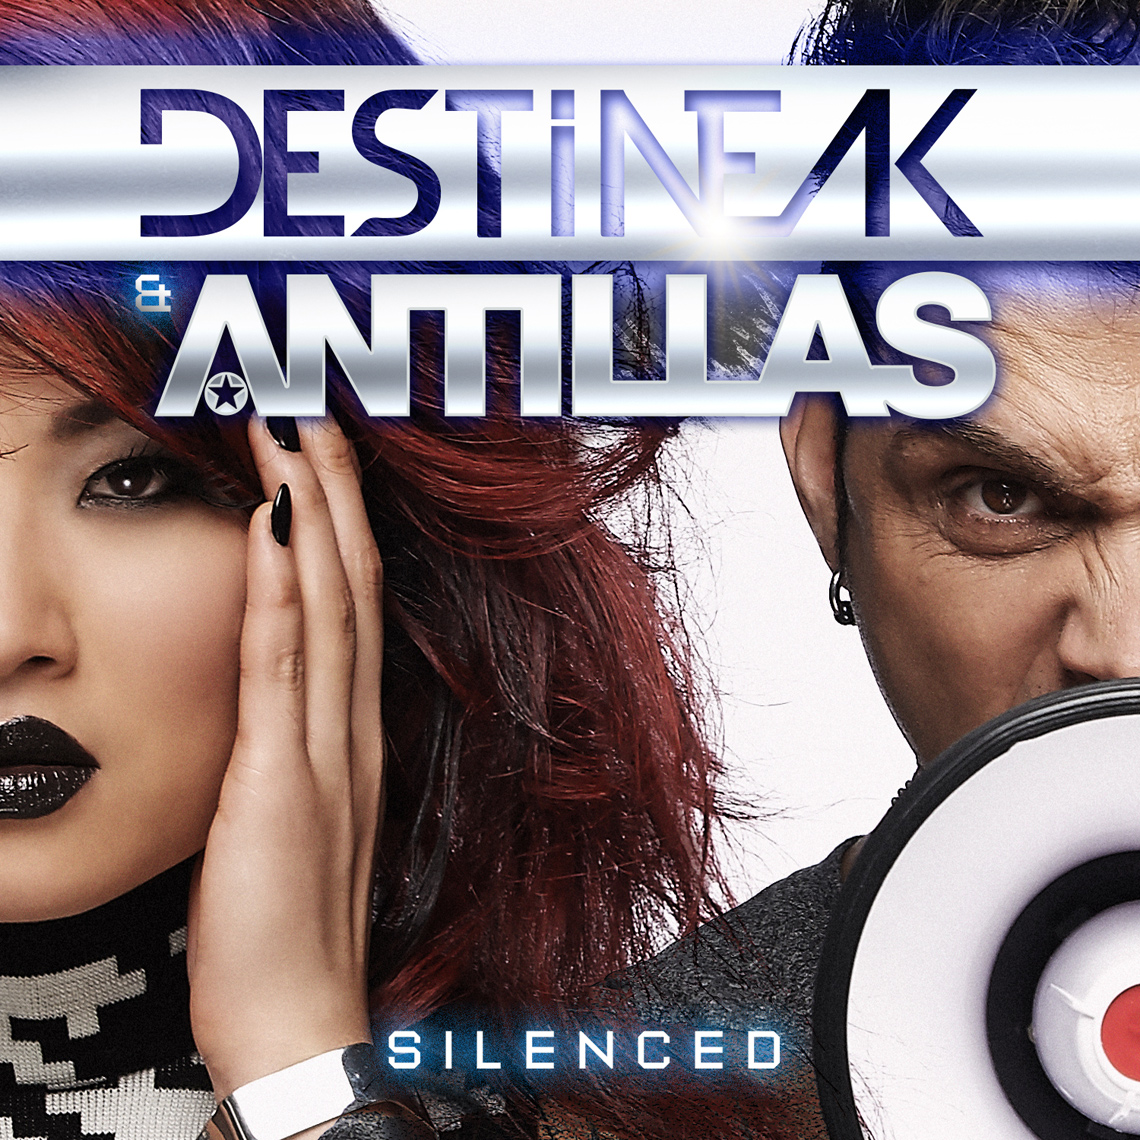 Destineak&antillas_SILENCED_Cover_FINAL